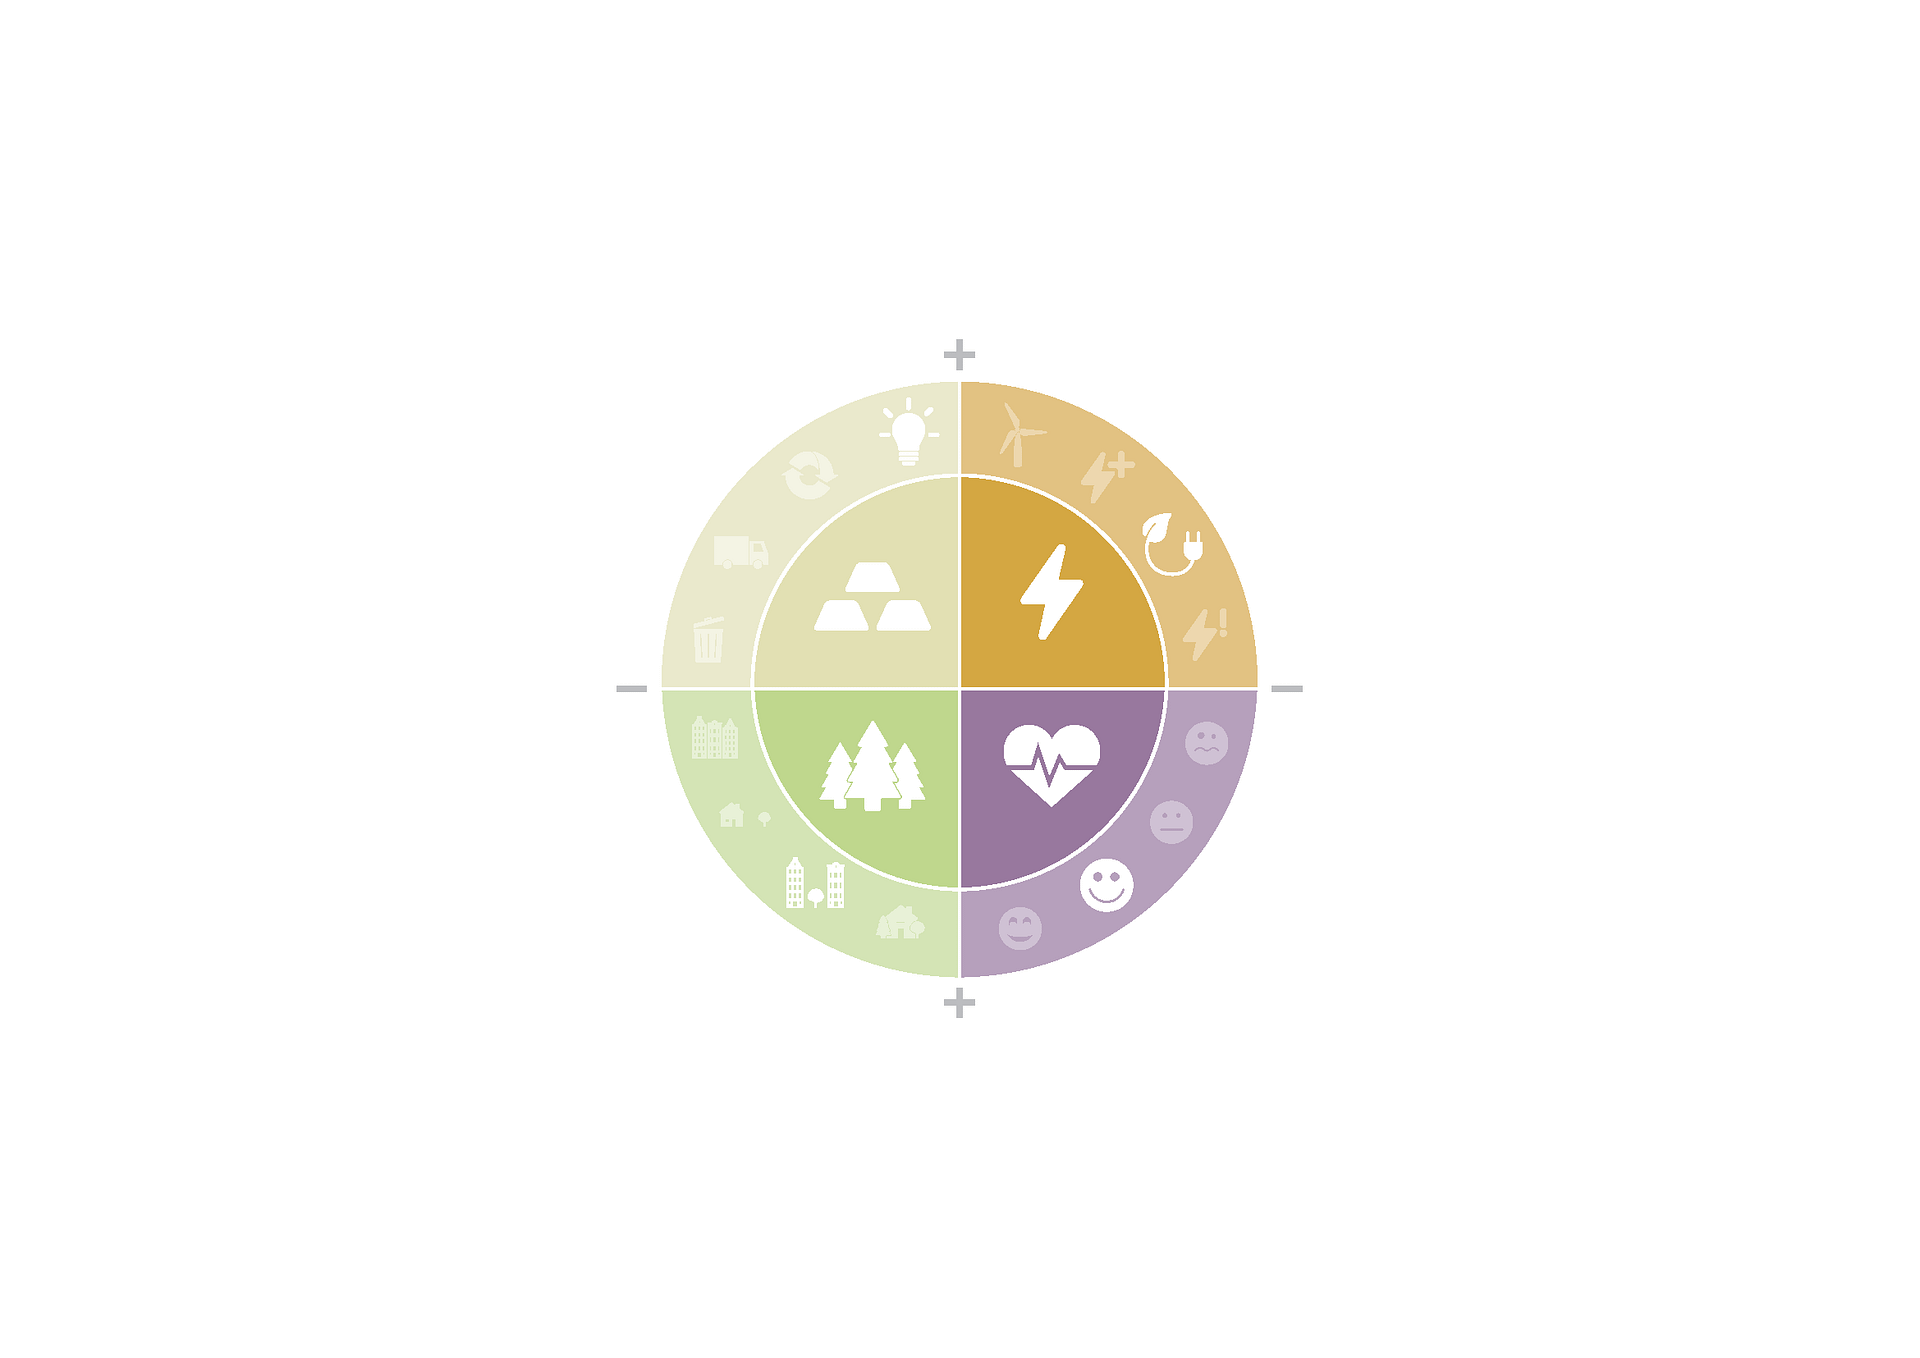 Metabolic devised a scorecard to assess each type of neighborhood in Amsterdam.